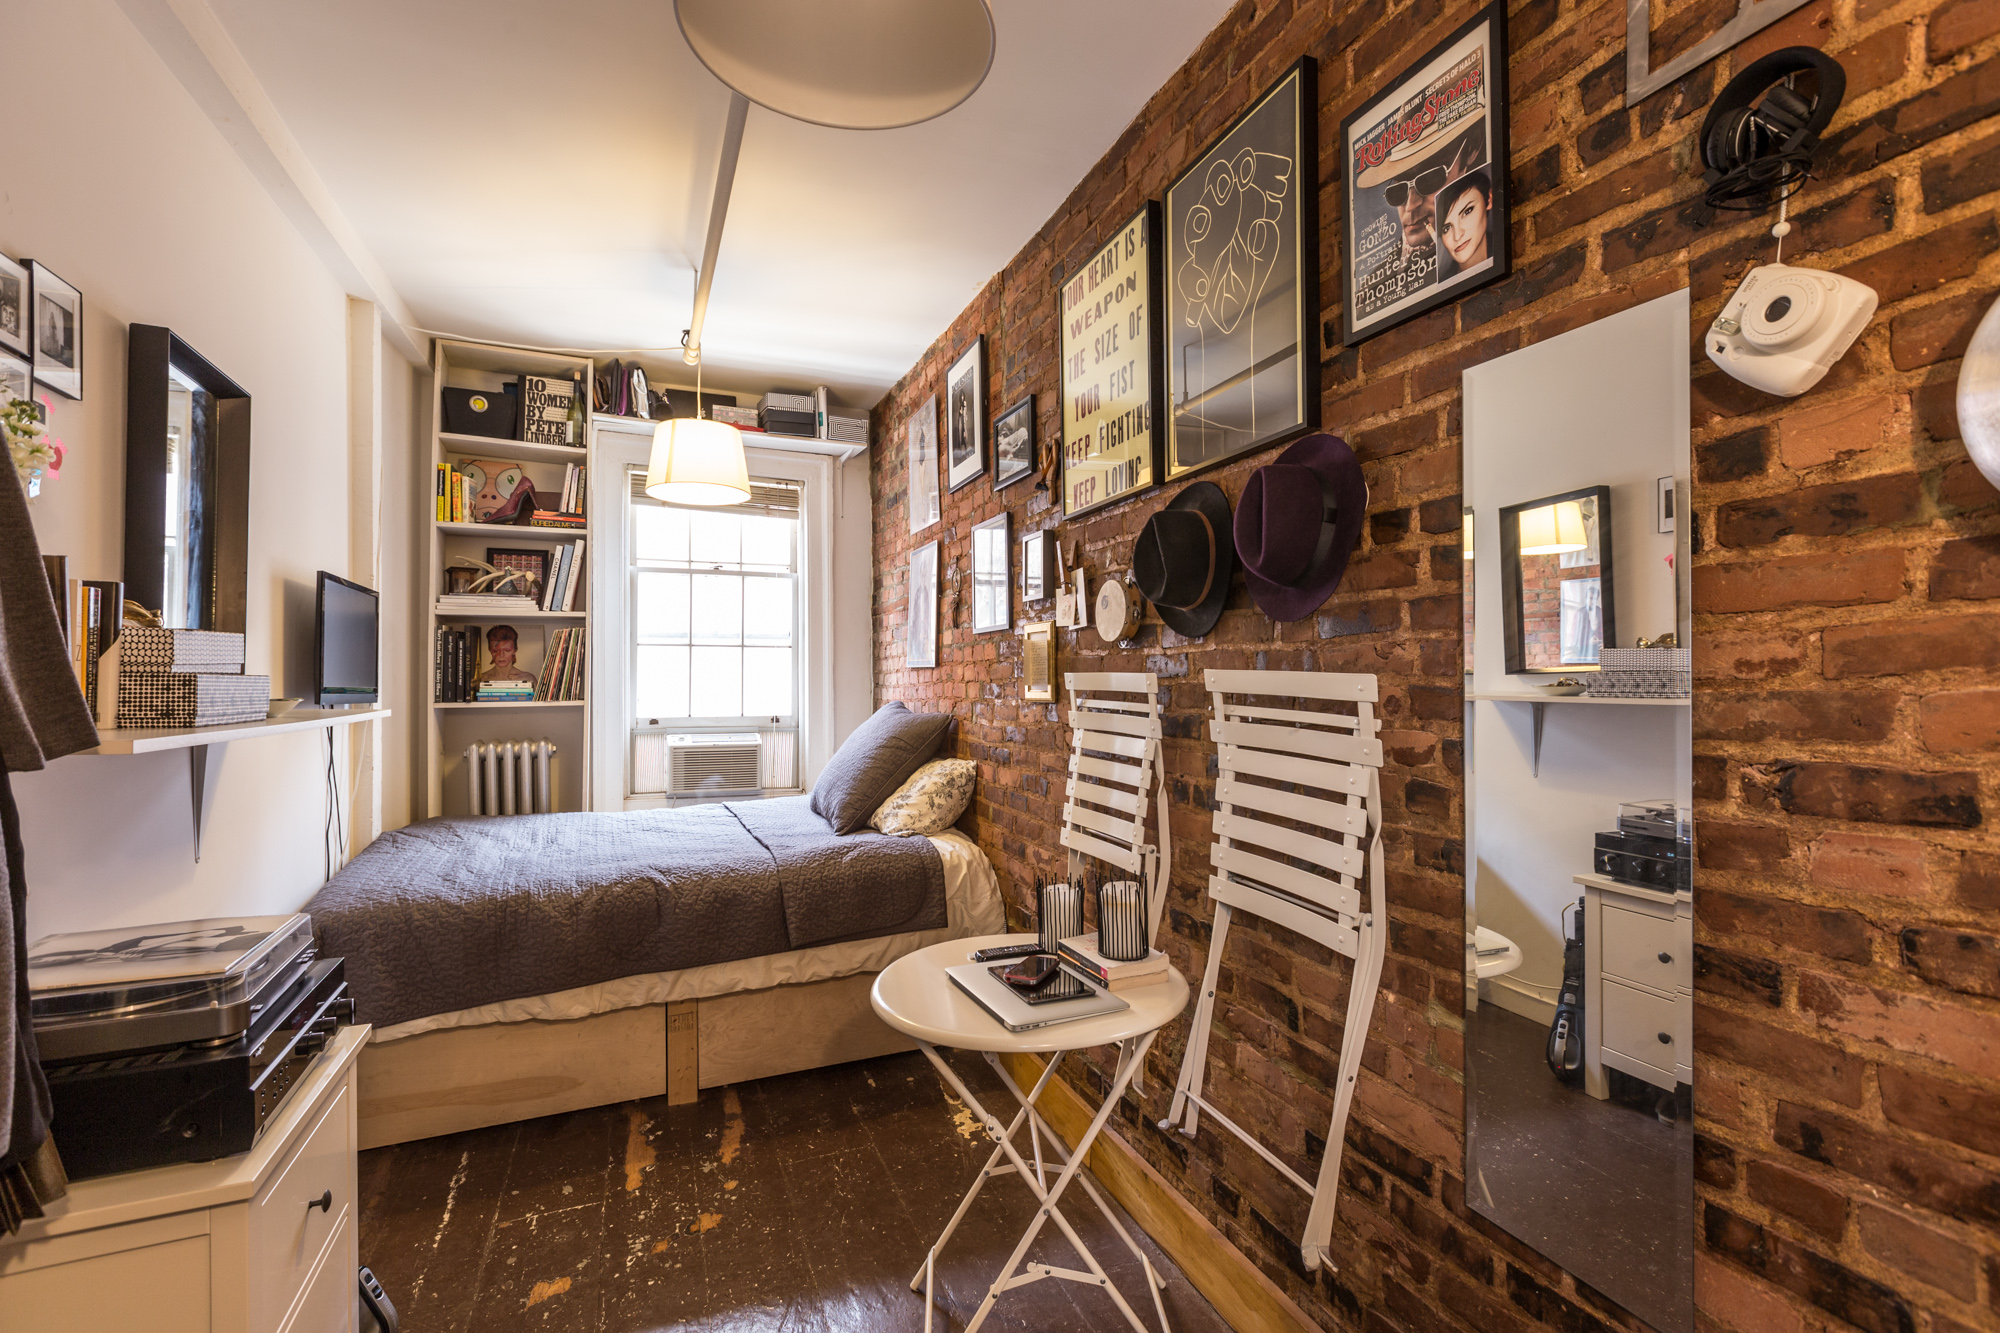 Well maintained apartments for comfortable living - How One New Yorker Lives Comfortably In 90 Square Feet